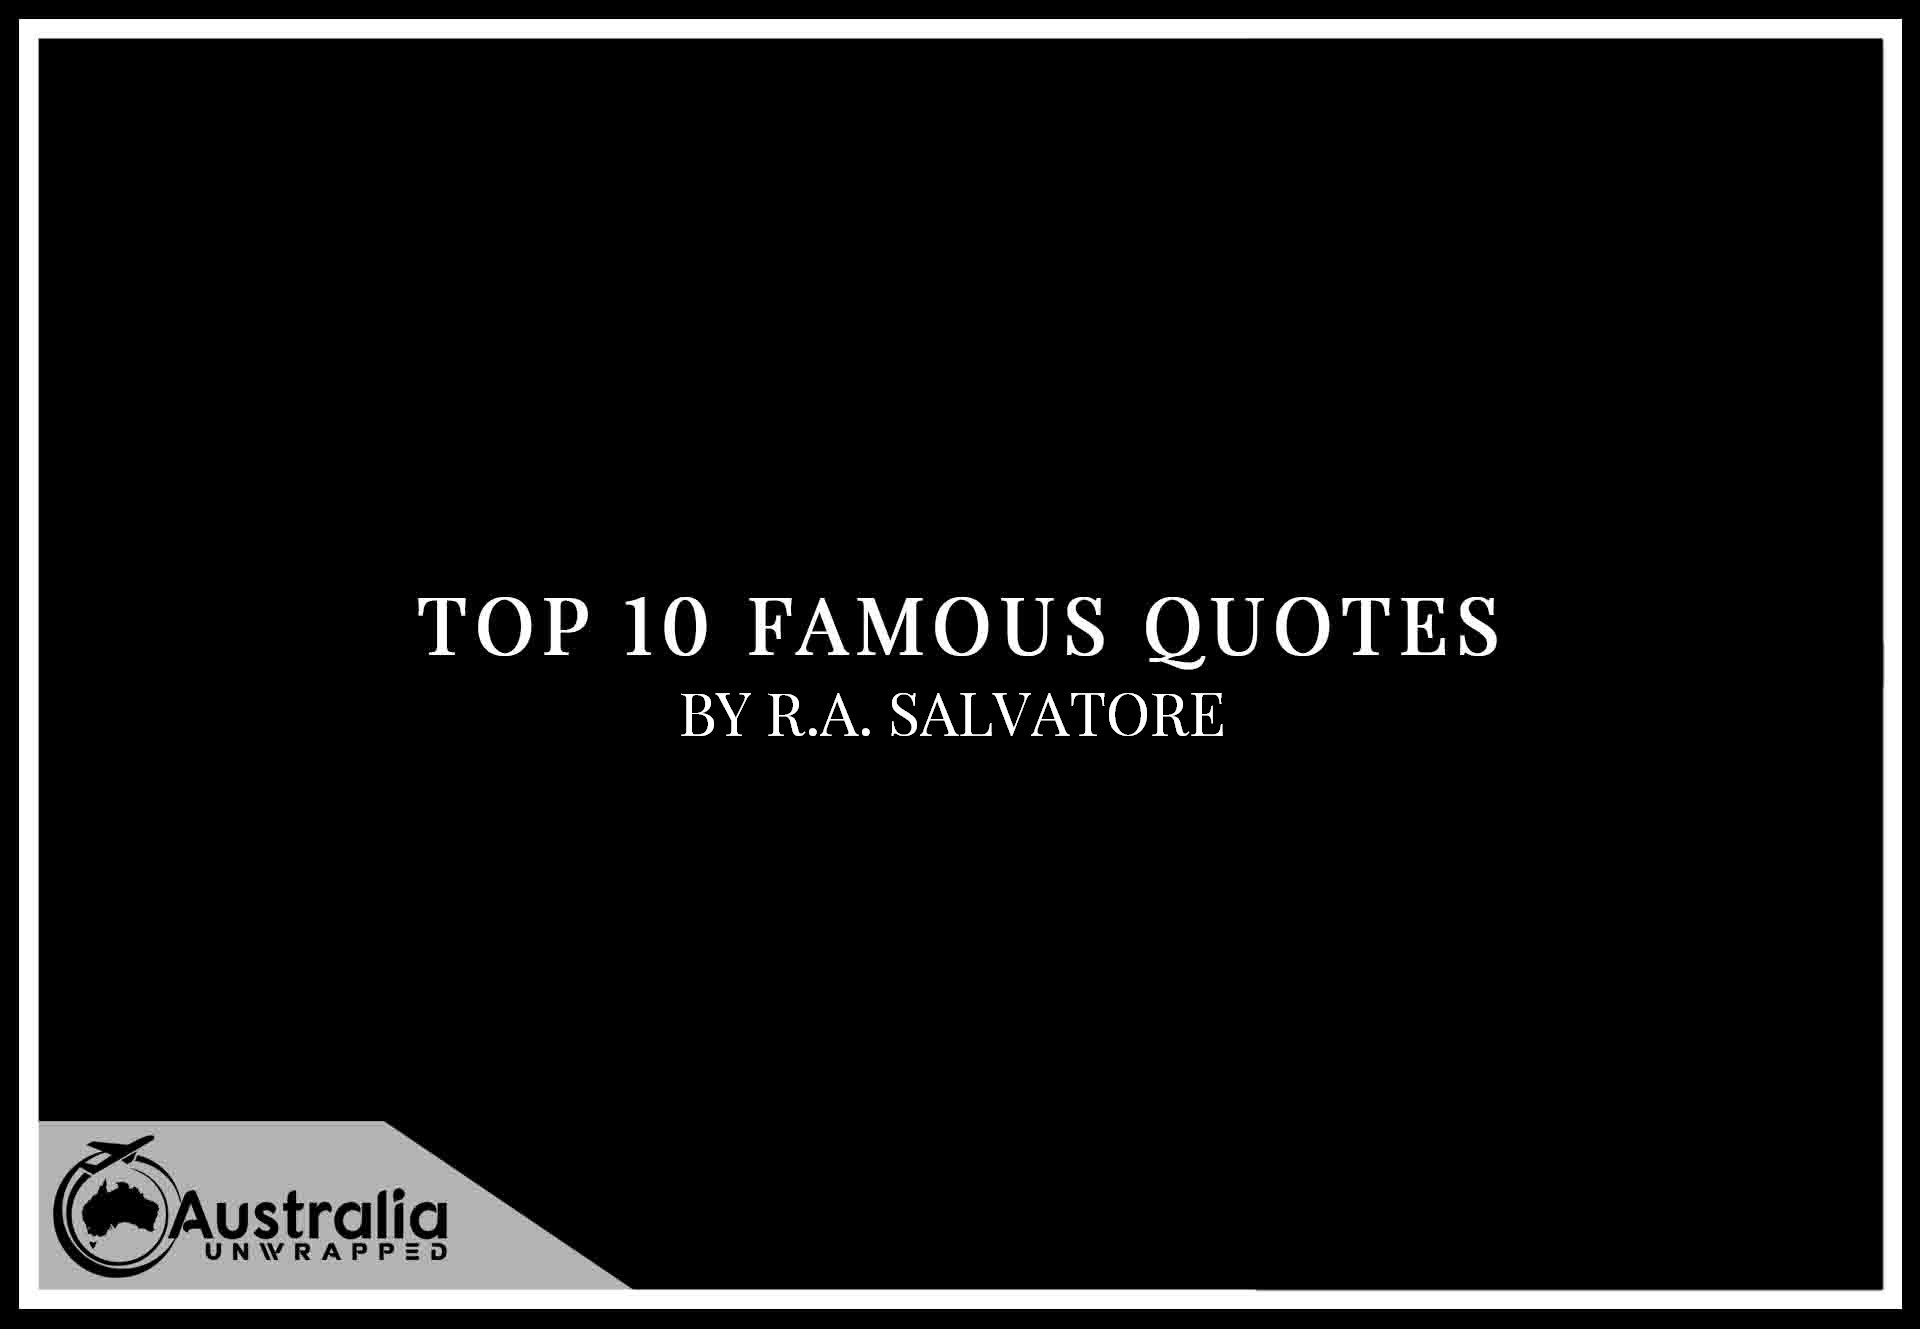 Top 10 Famous Quotes by Author R.A. Salvatore